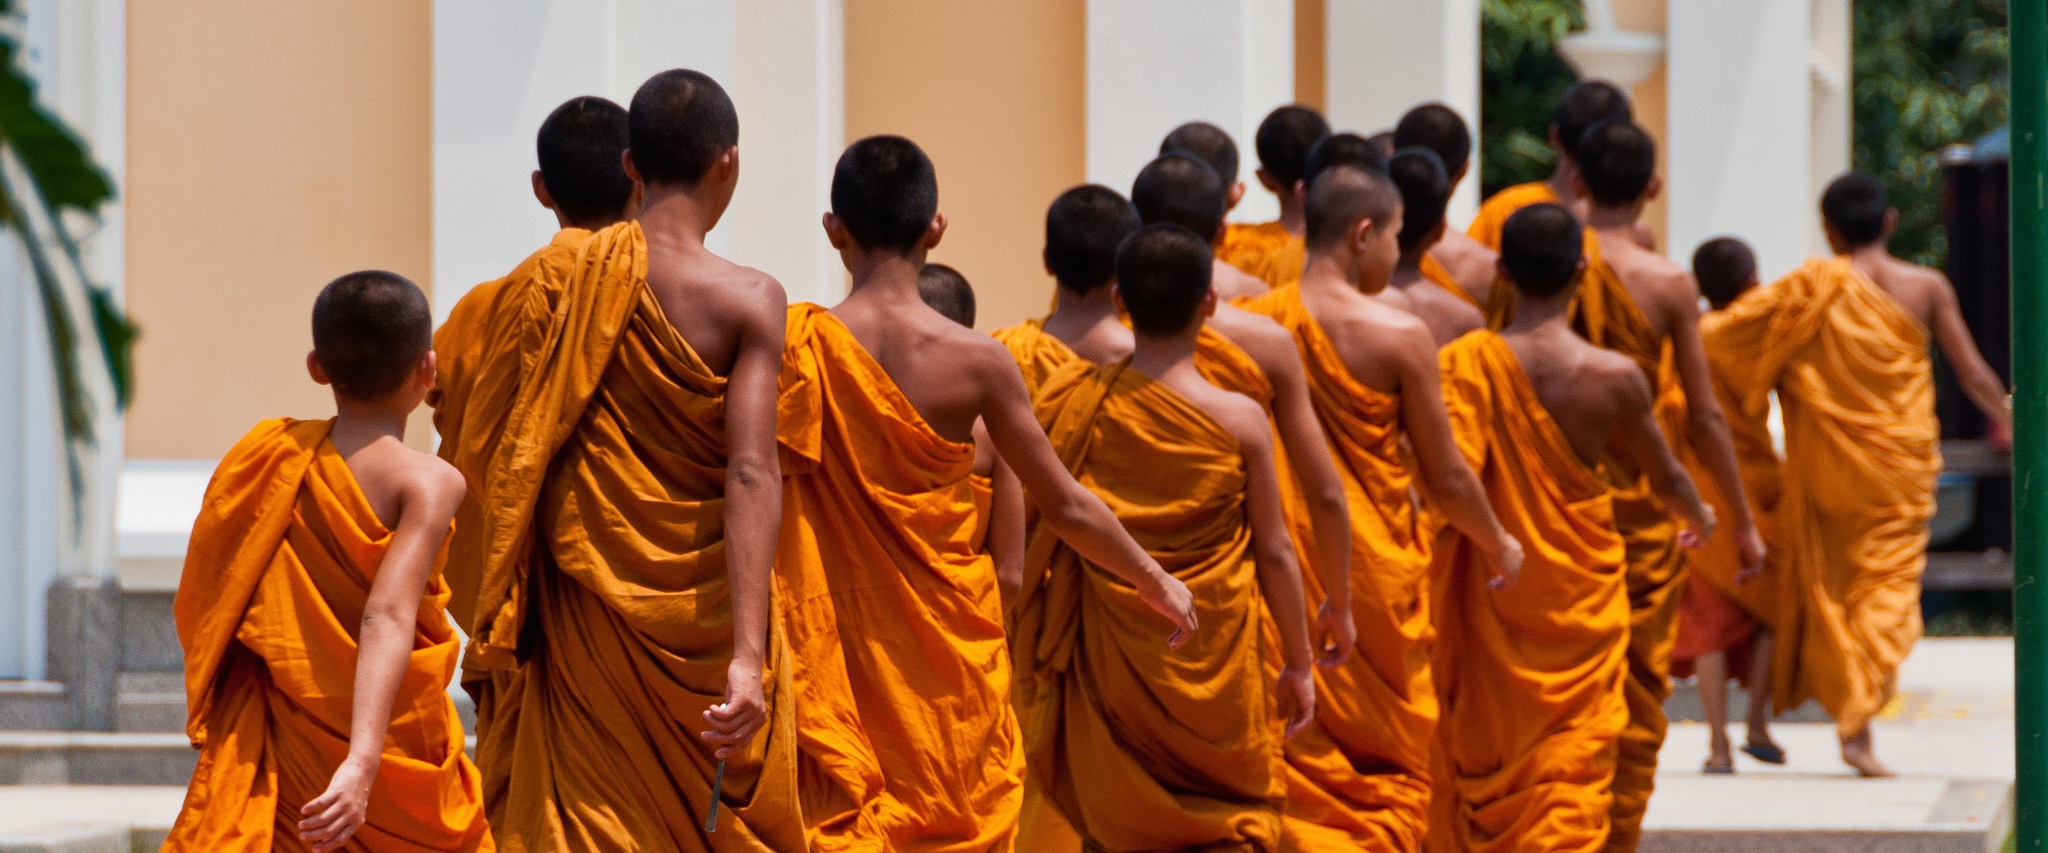 10 Most Religious Countries in the World